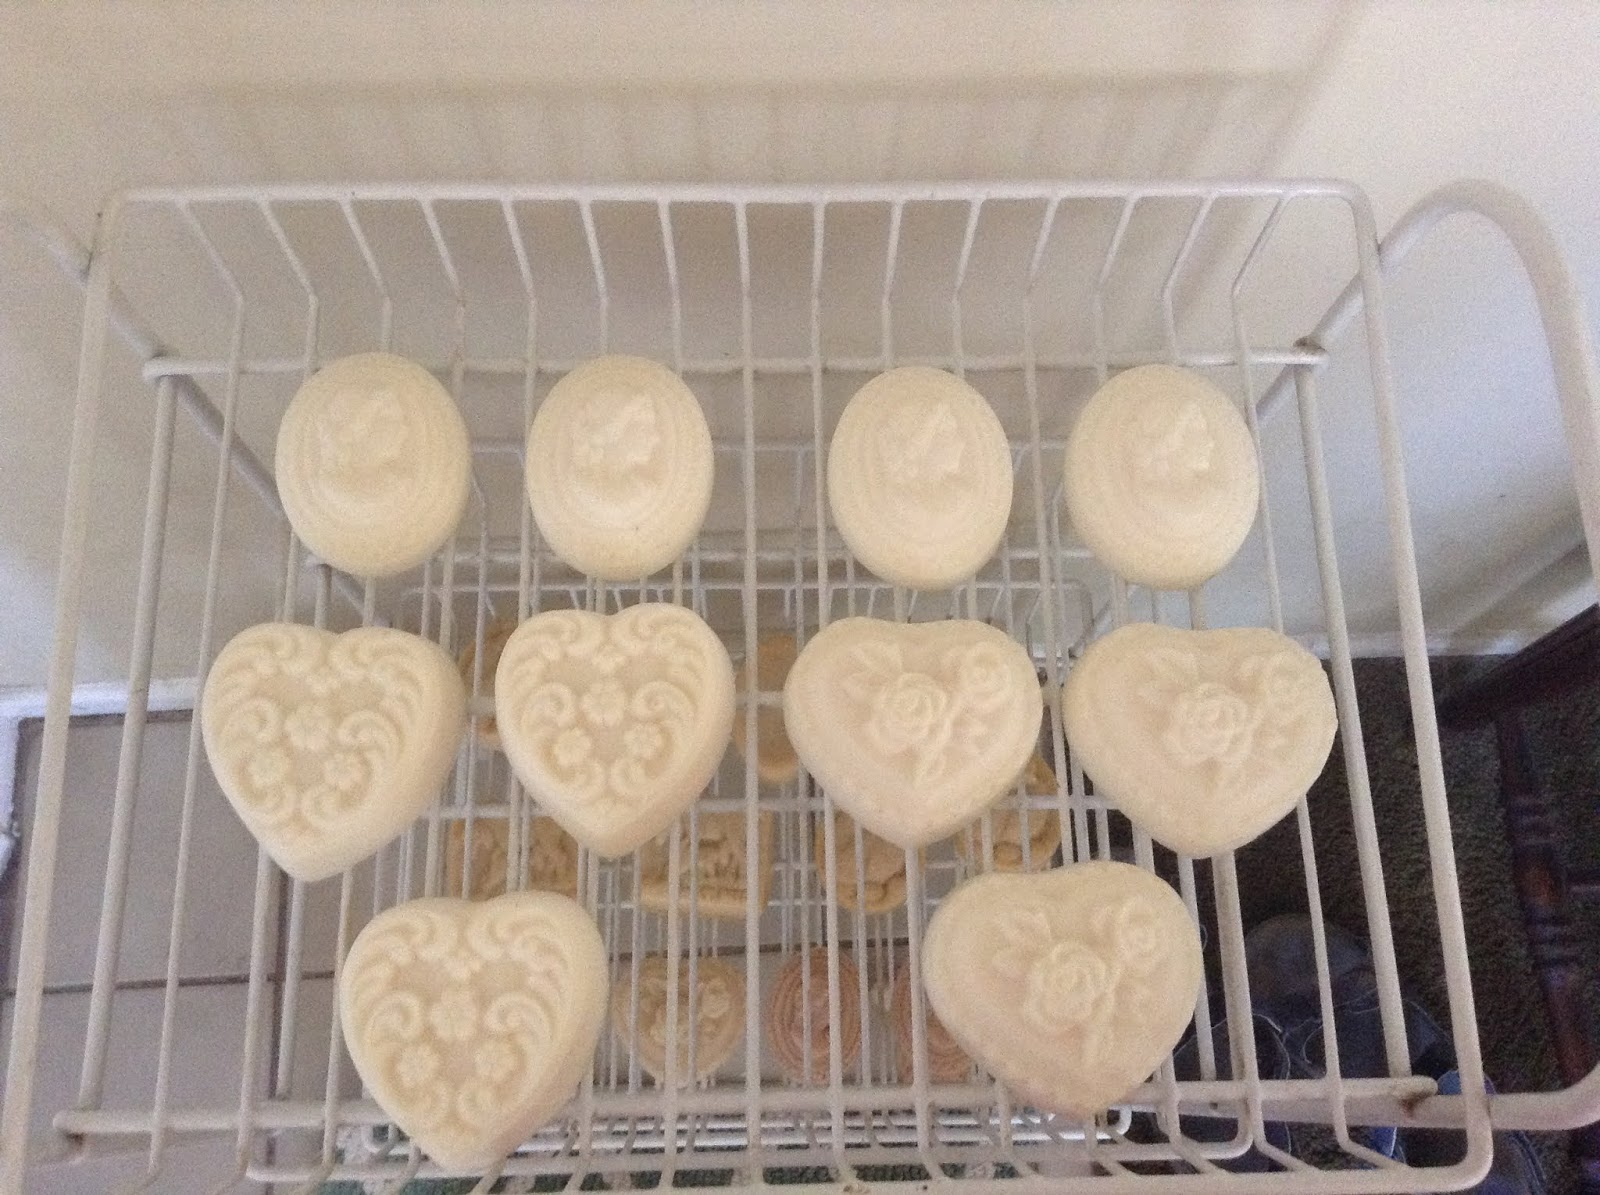 Yesterday I Made A Batch Of Coconut Oil Soap With 20 Superfat Love This Recipe It Creates Wonderful Creamy The Color Is Snowy White